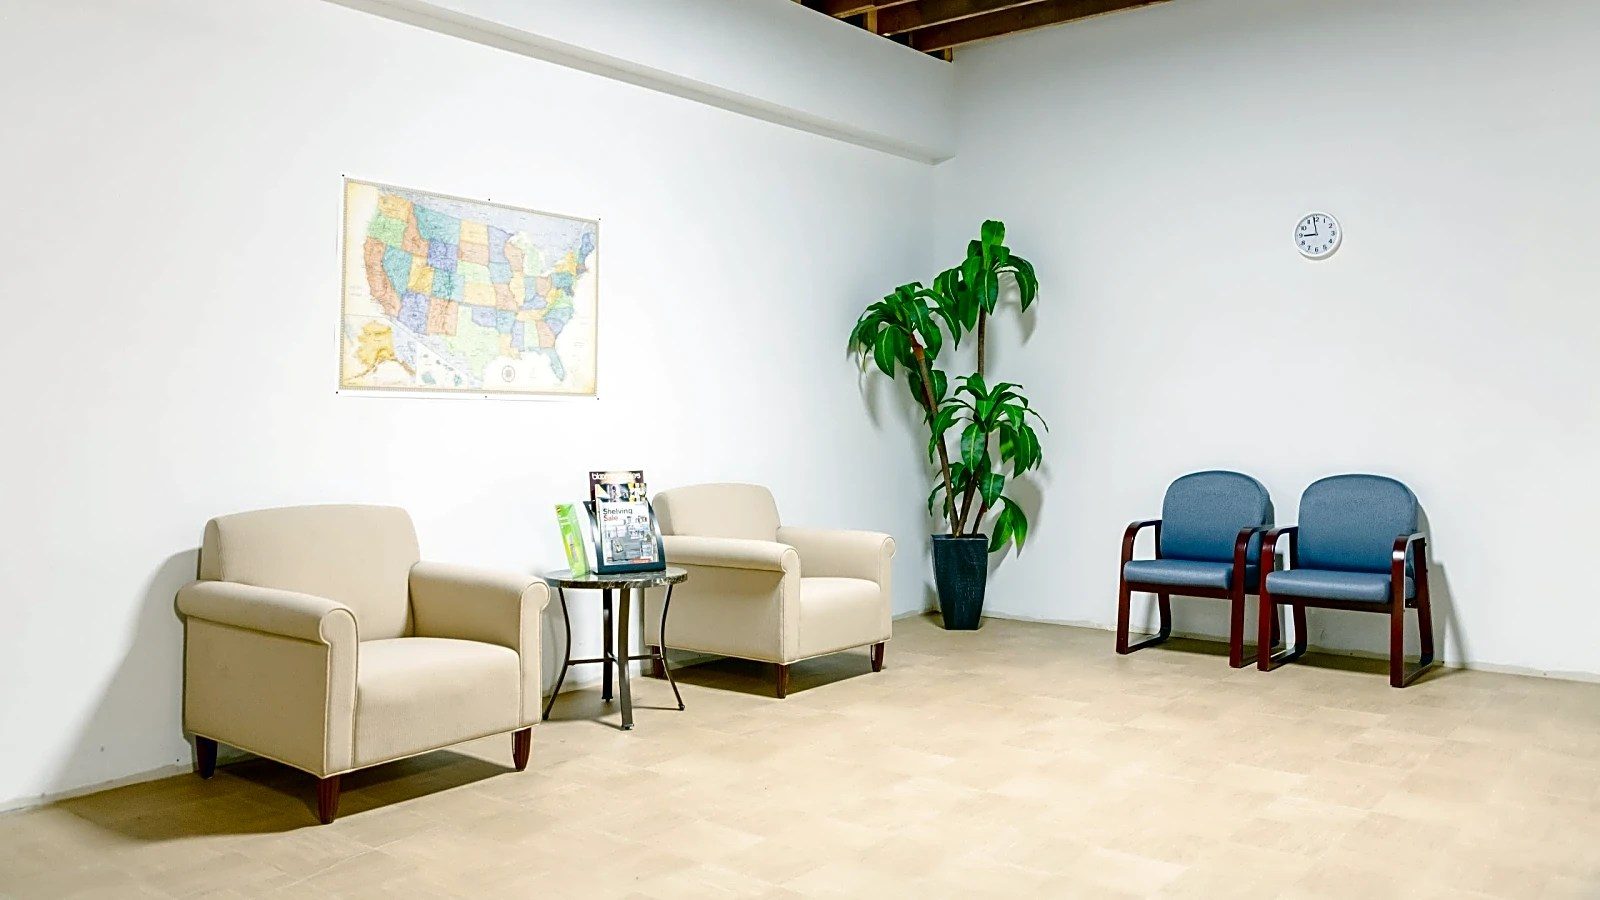 Essteller Set La Police Station Bank Teller Set Event Space Corporate And